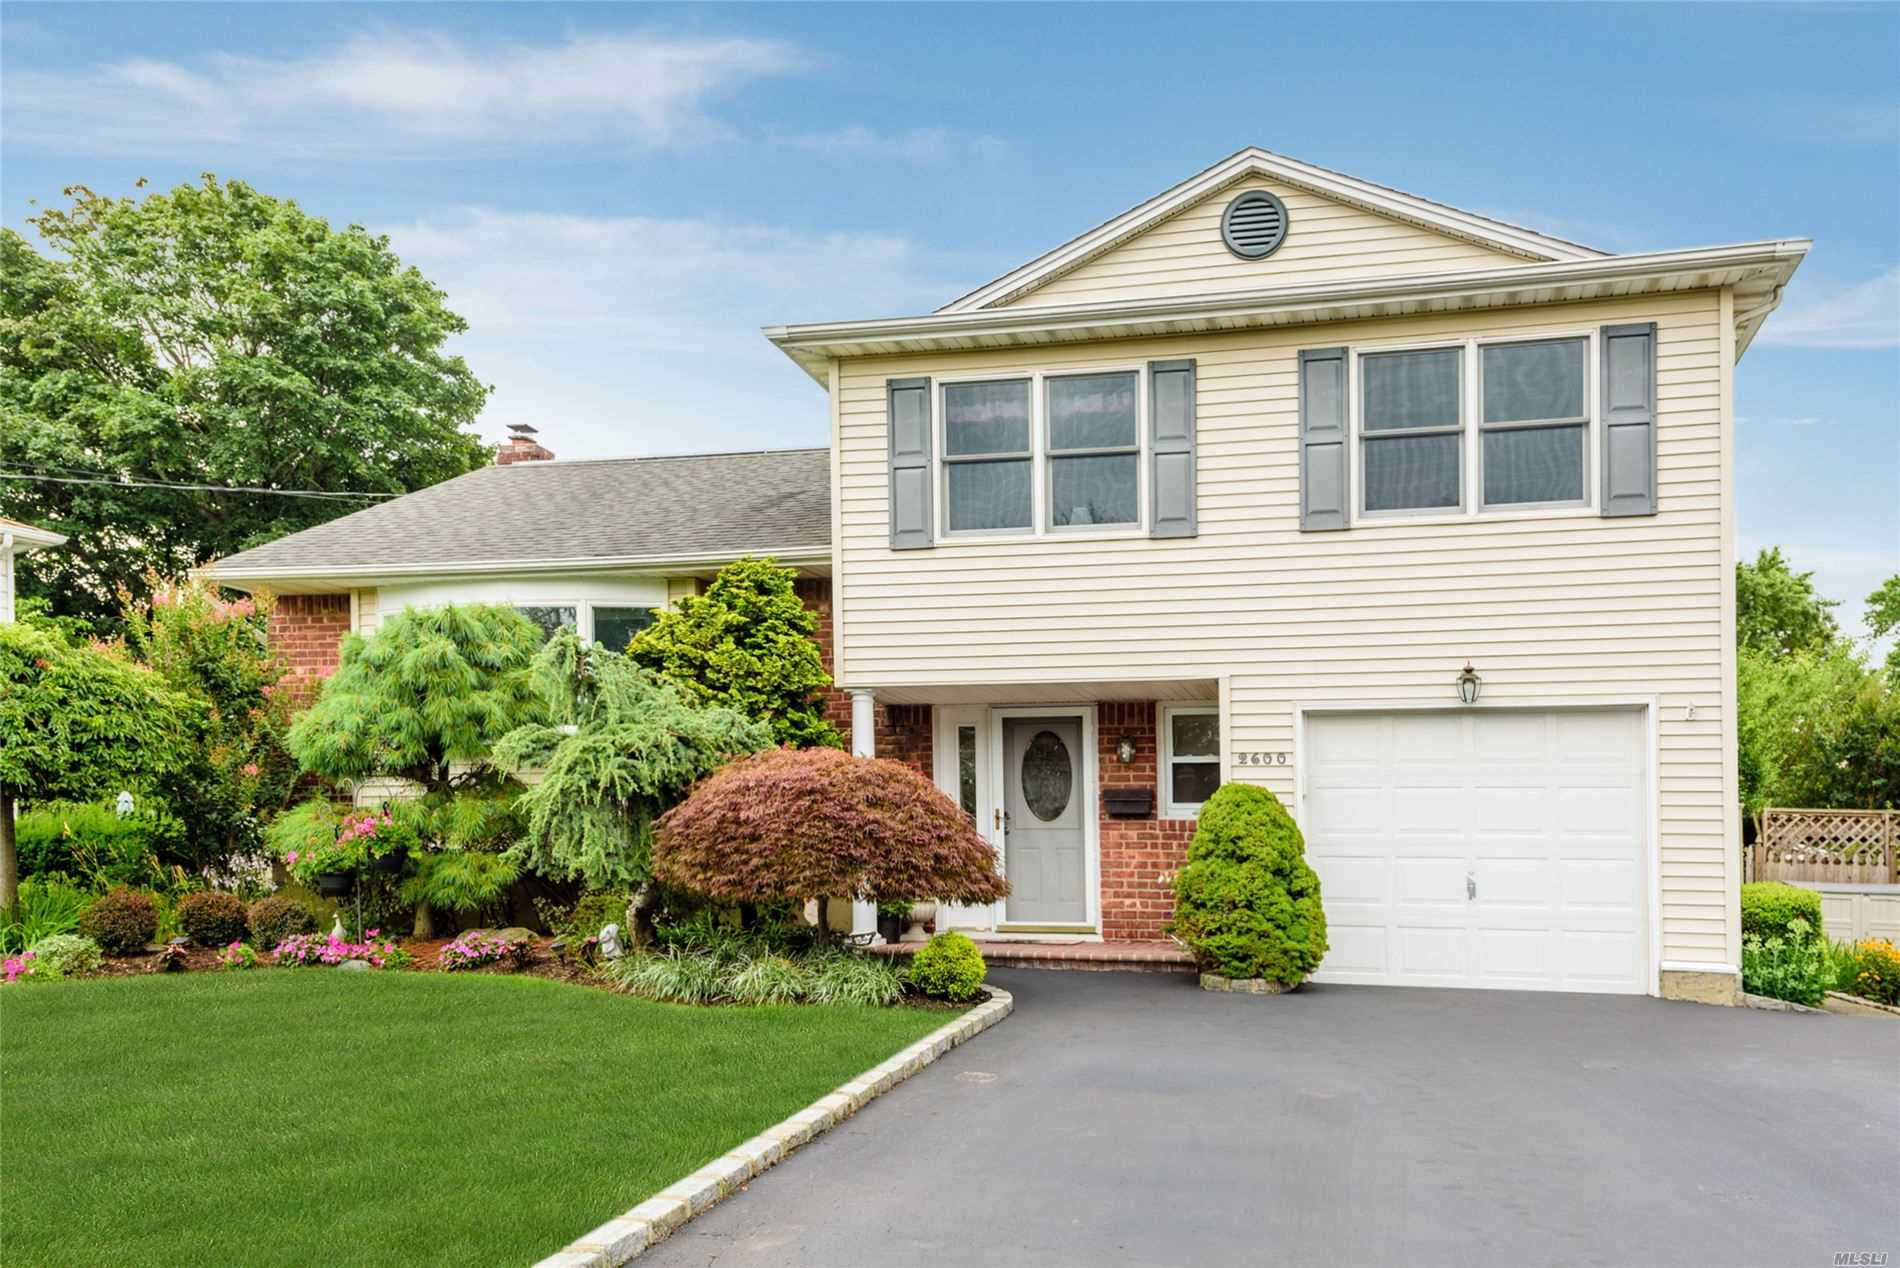 2600 Phyllis Dr North Bellmore Ny 11710 Mls 3150011 Coldwell Banker